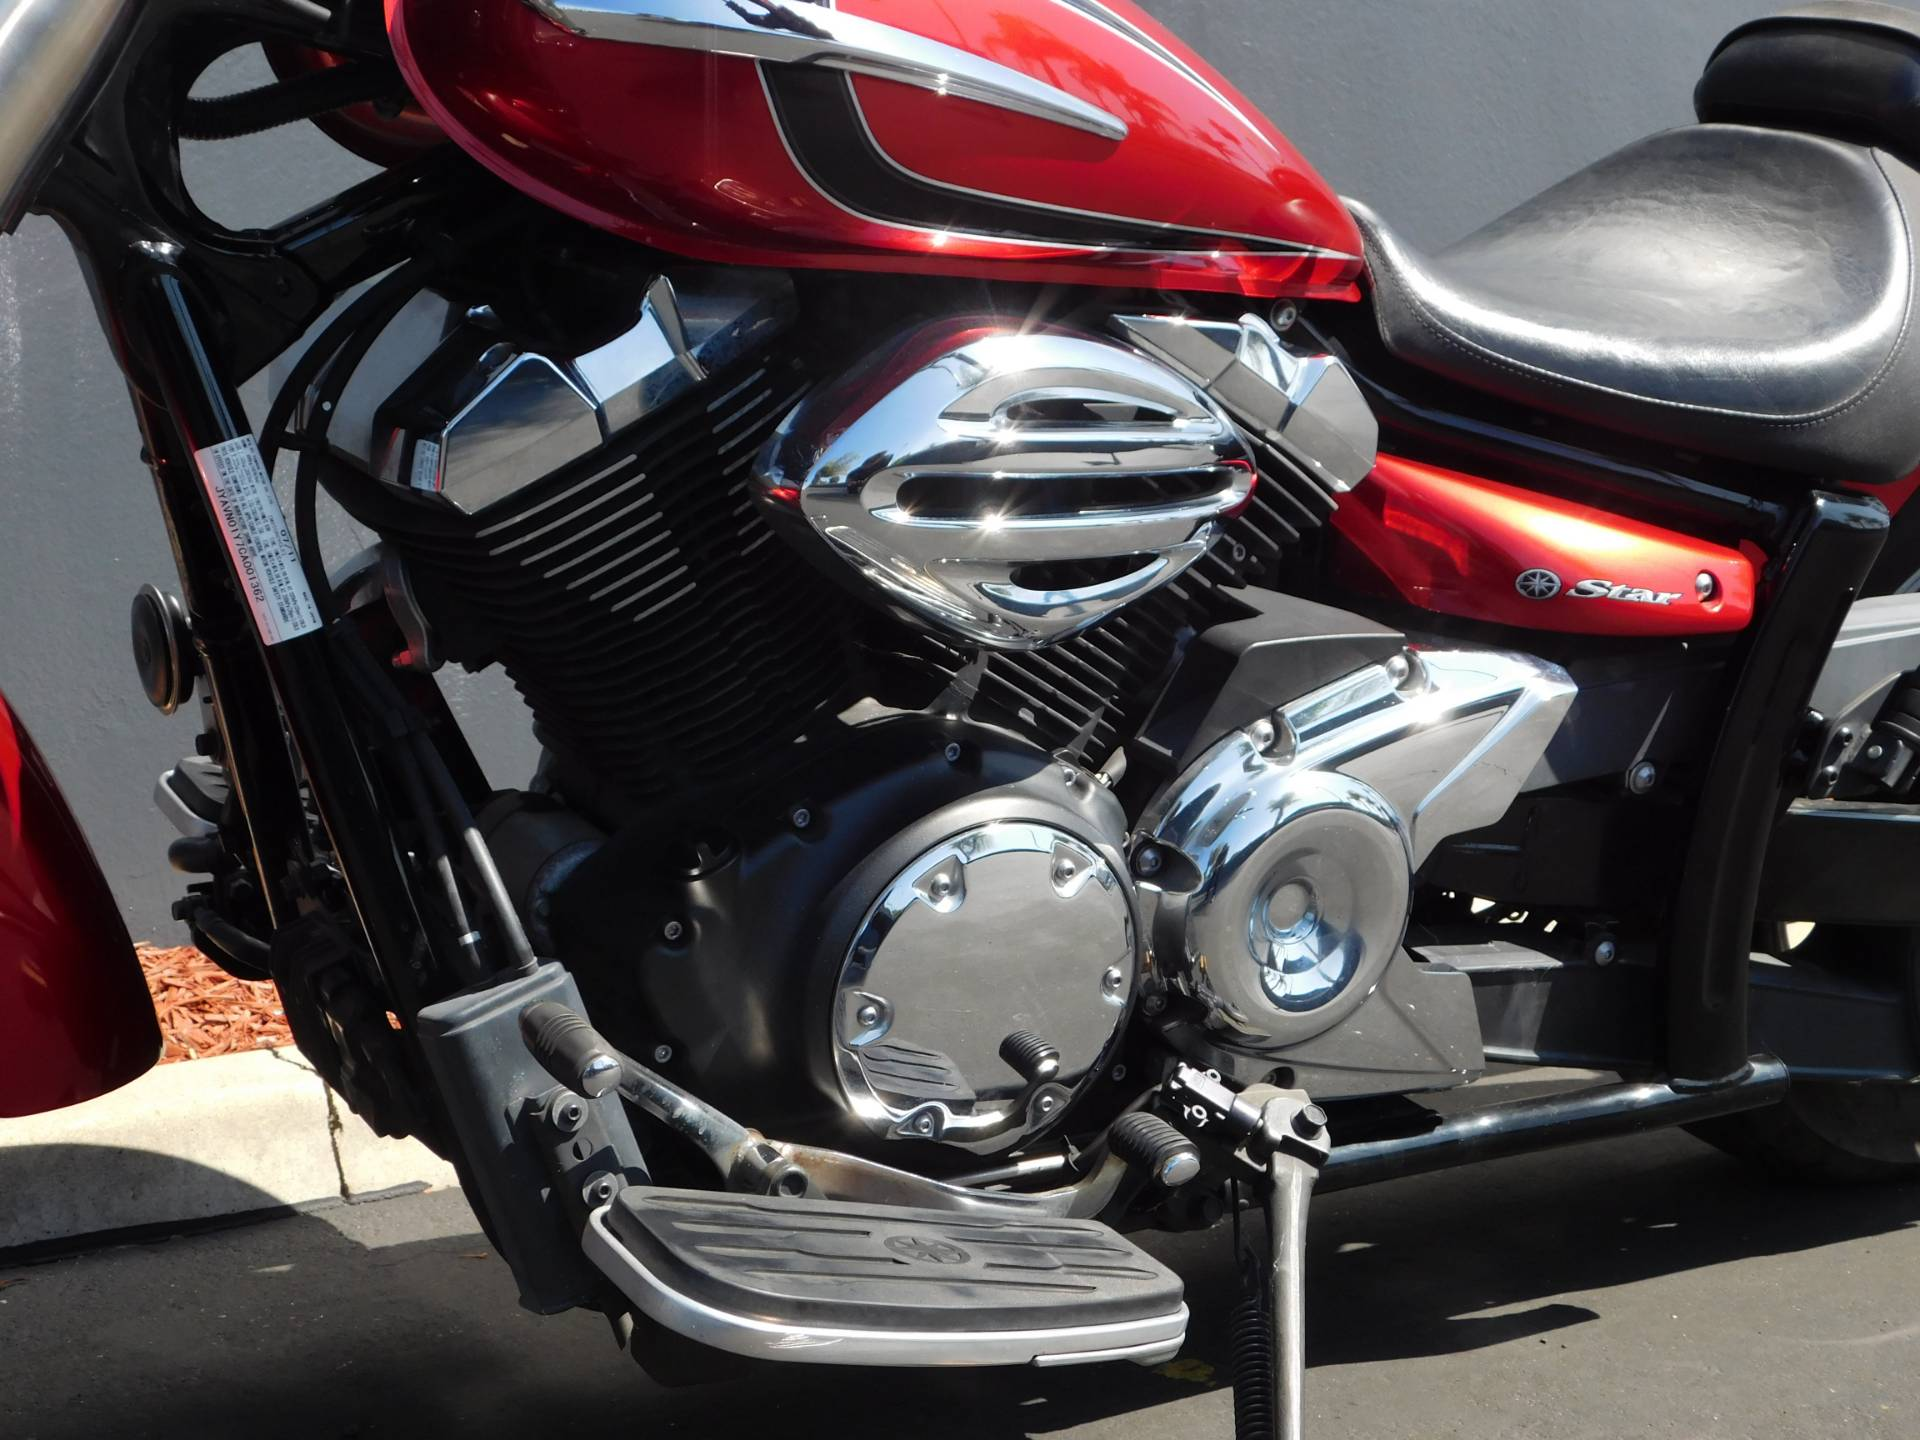 2012 Yamaha V Star 950 in Chula Vista, California - Photo 18